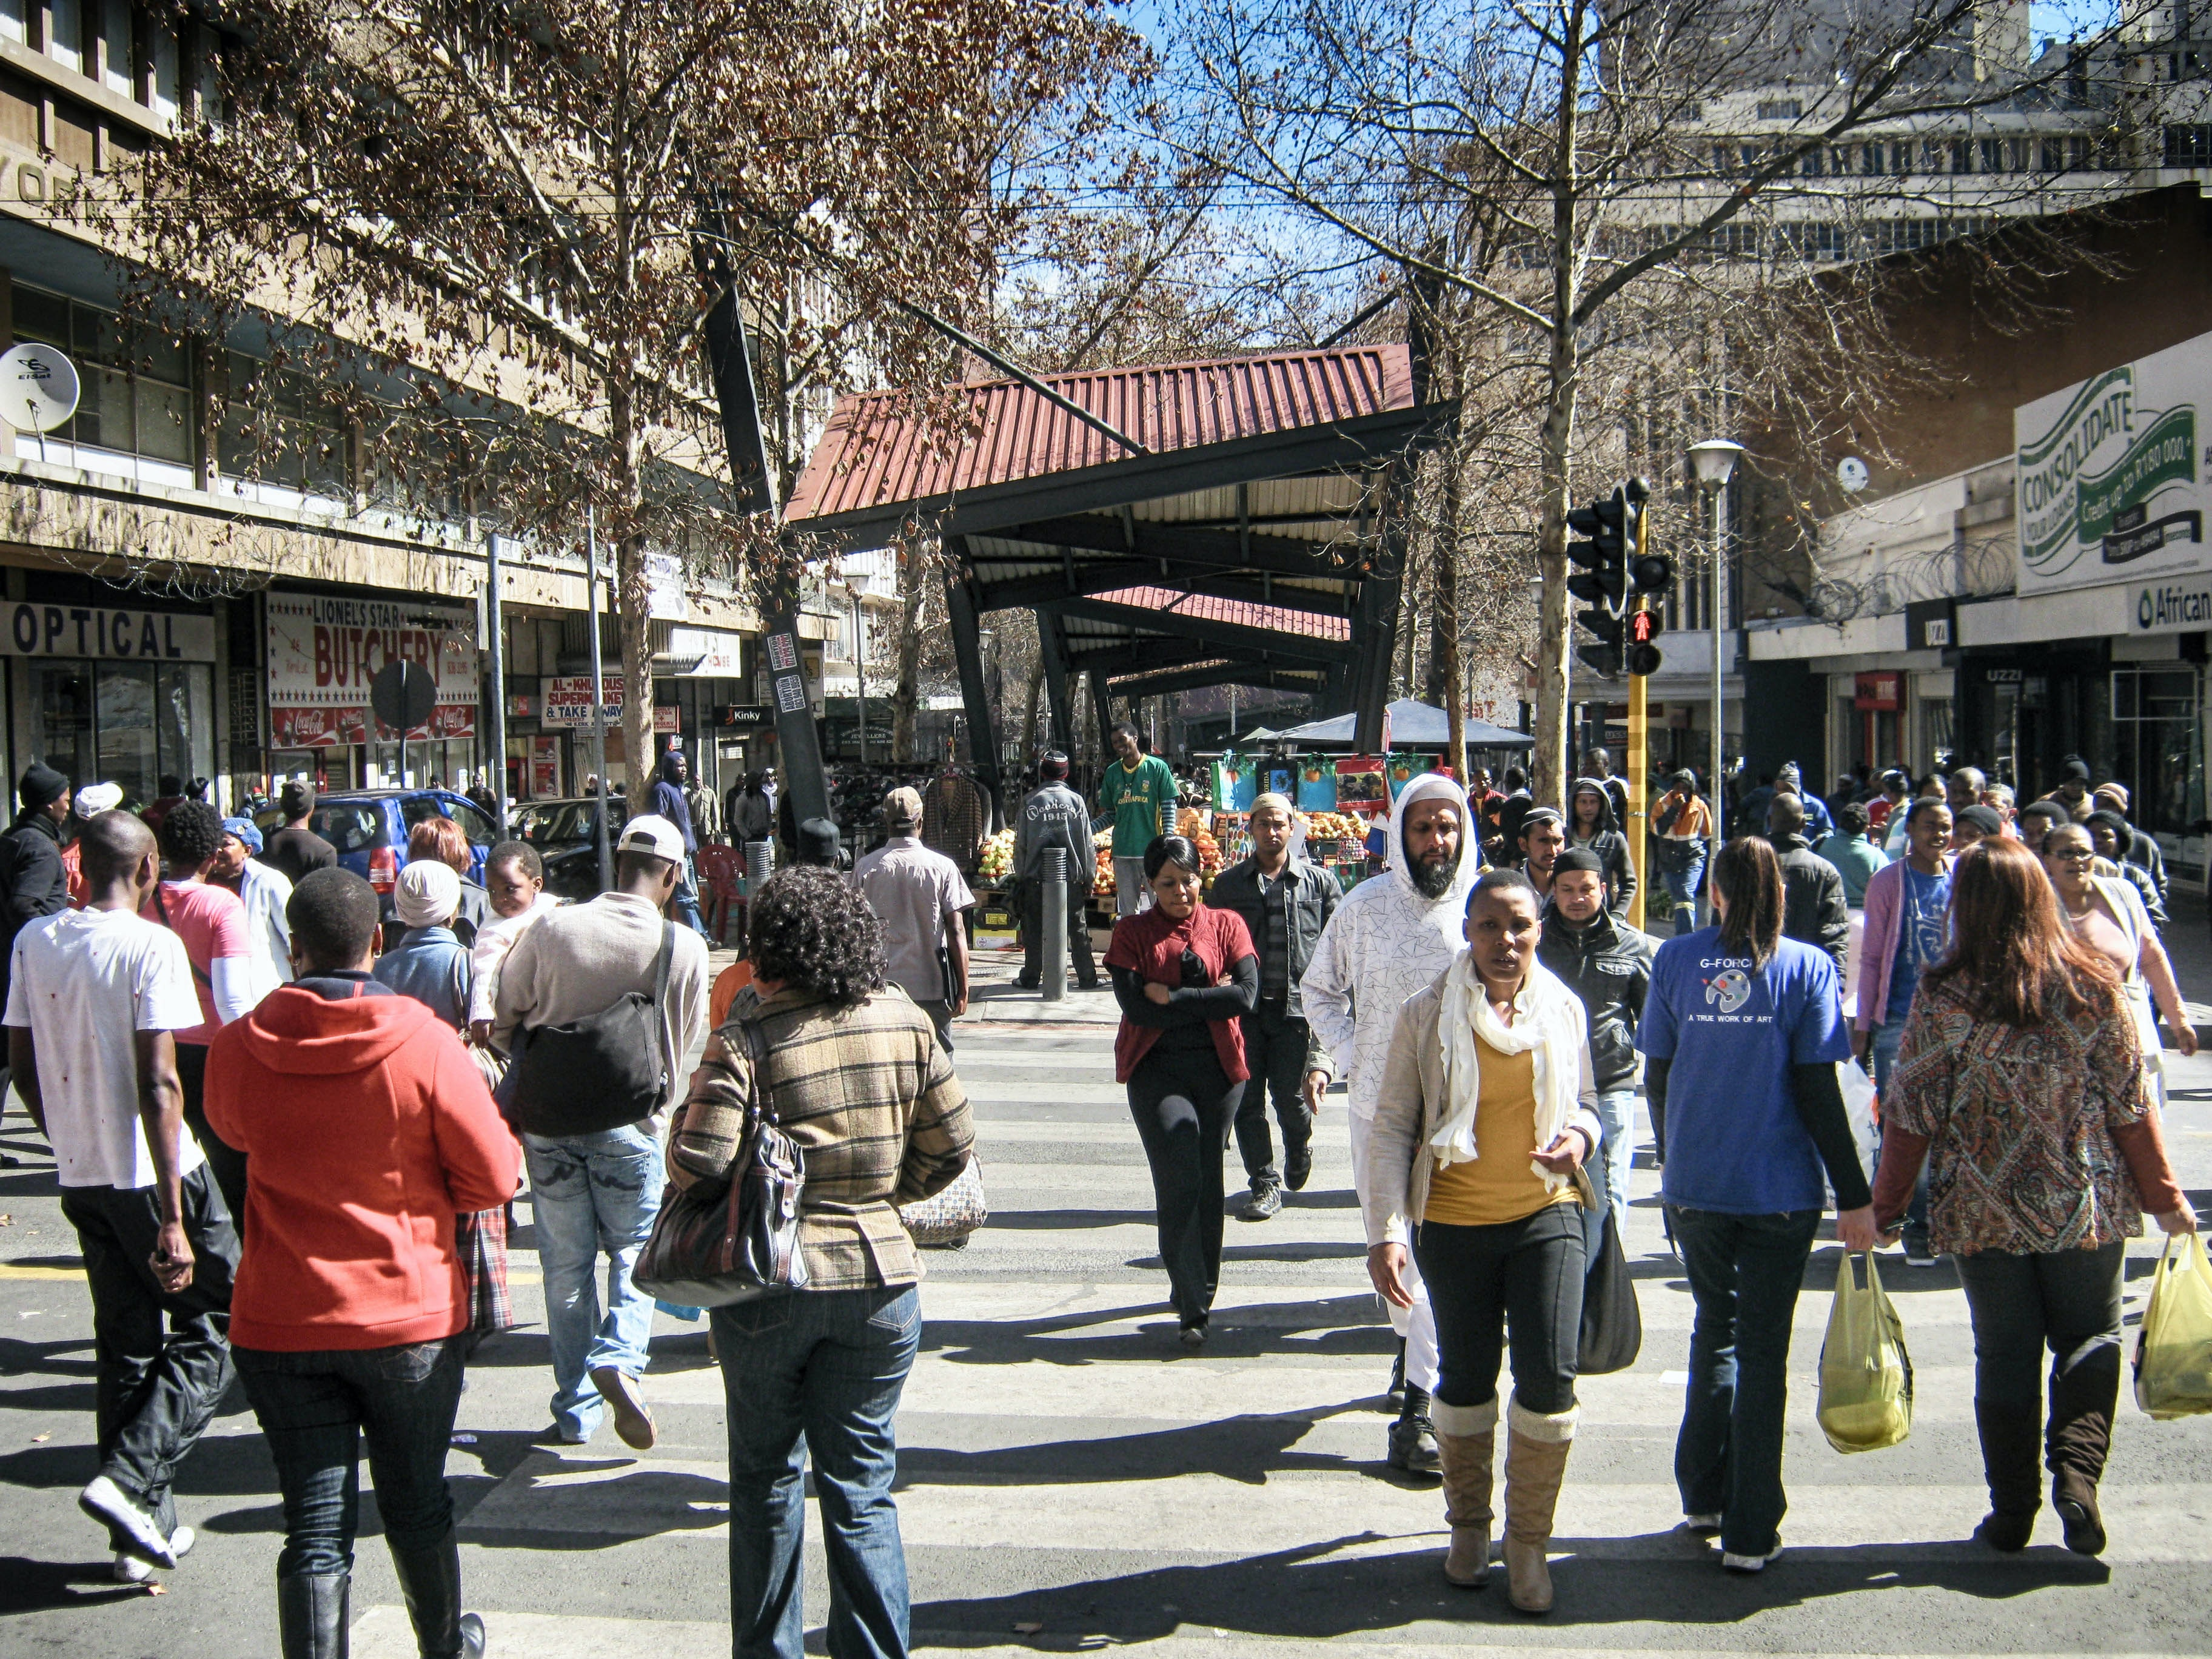 Life in South Africa's economic hub is improving -- but big challenges remain